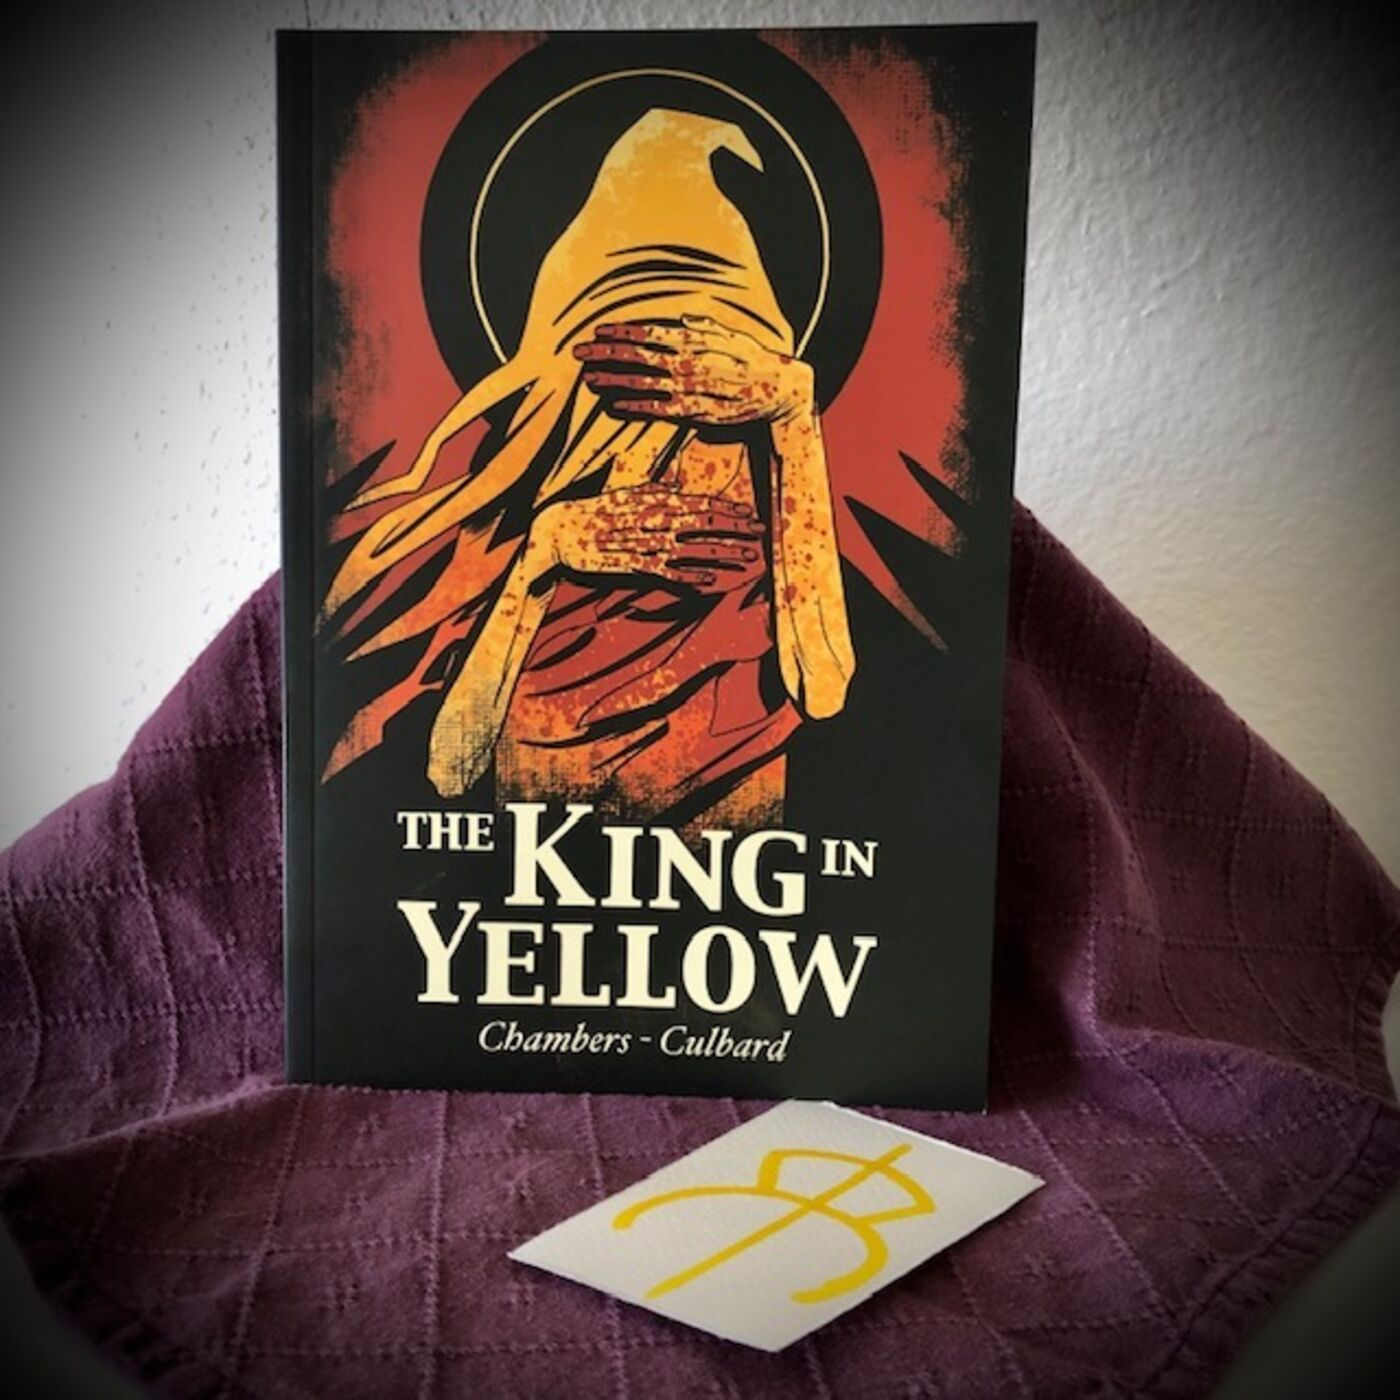 HPLCP Fragments - Ep 12 - I. N. J. Culbard's The King in Yellow